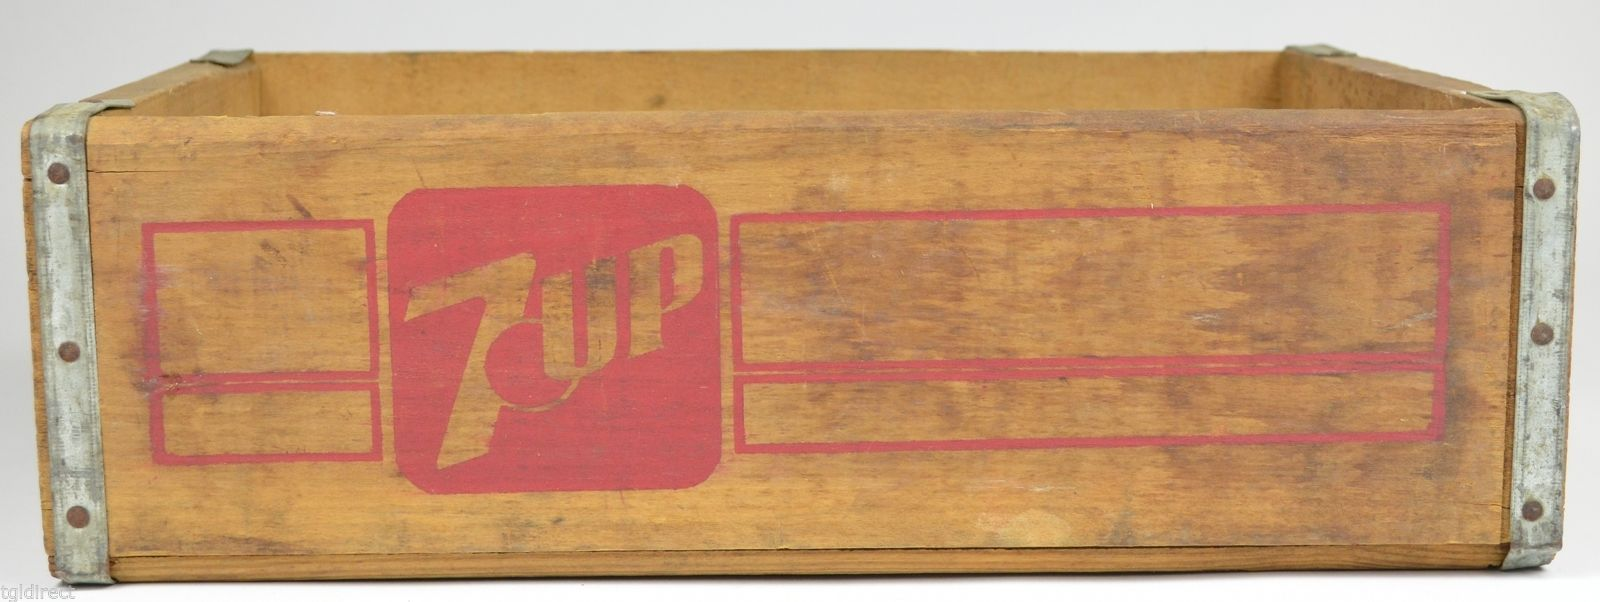 Primary image for Vintage Wood Seven Up Bottle Crate Indianapolis Ind. Decorative Collectible Soda